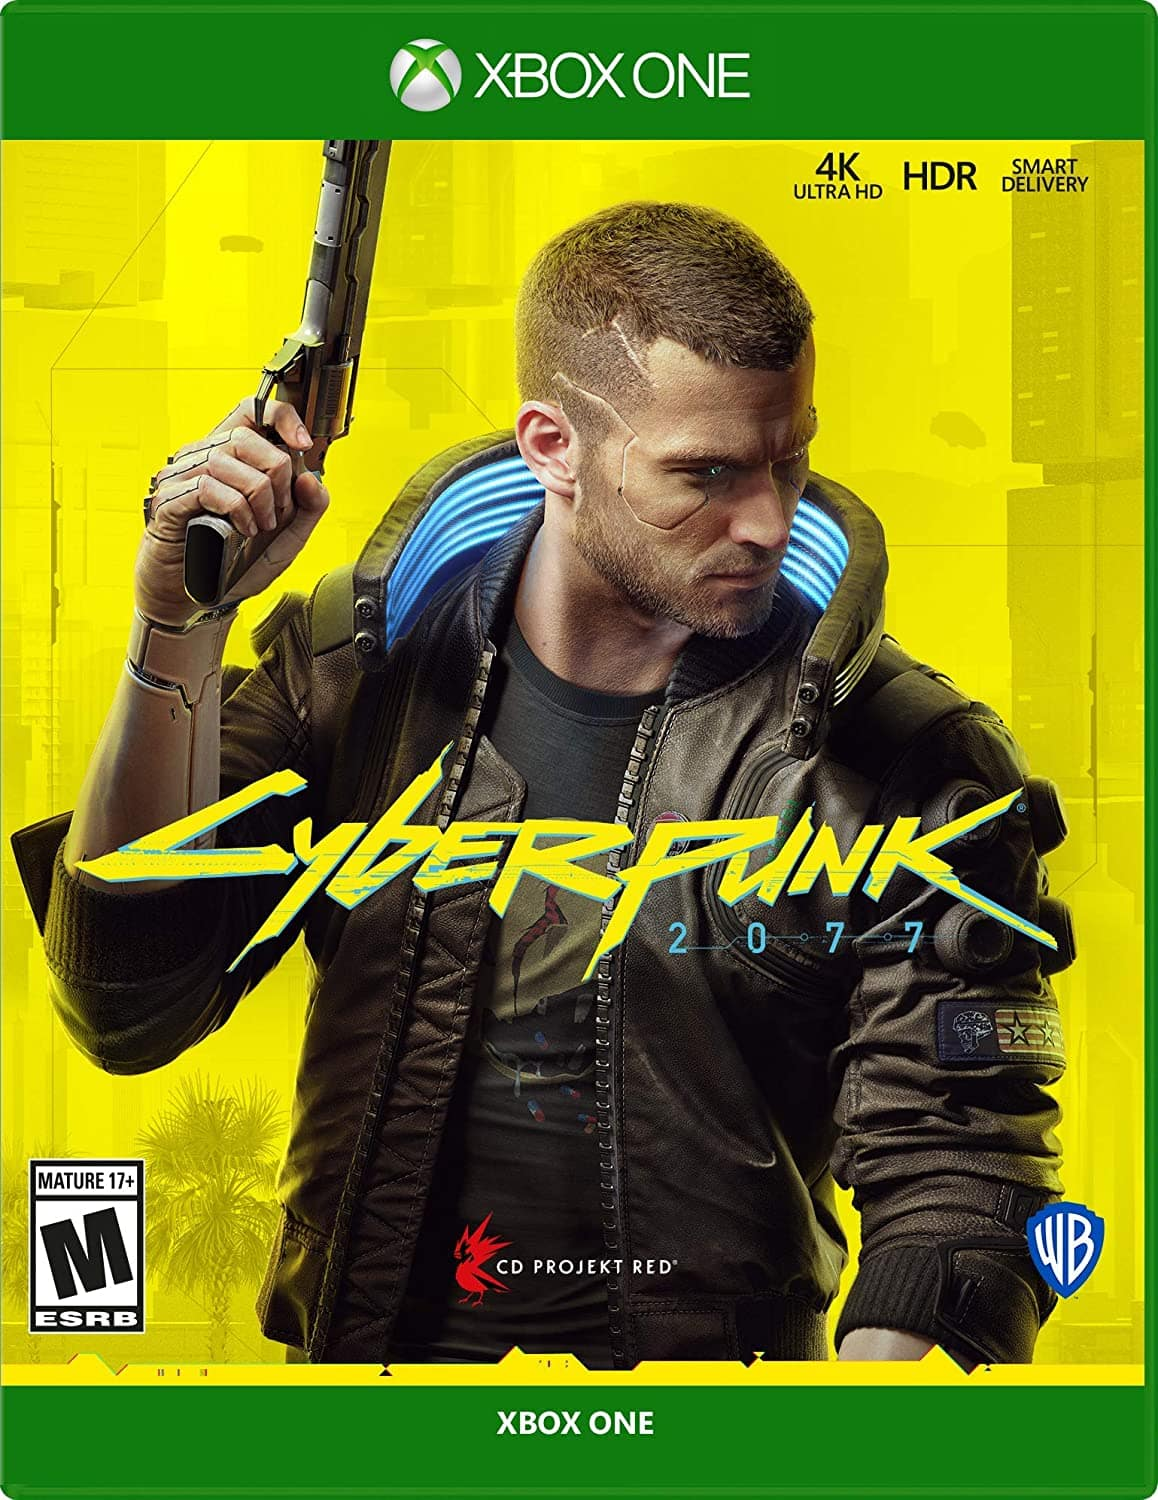 Amazon Xbox One and Series X Game Sale (Valhalla, Cyberpunk 2077 $35, Gears Tactics, Watch Dogs Legion $25, FIFA 21, Squadrons $20)